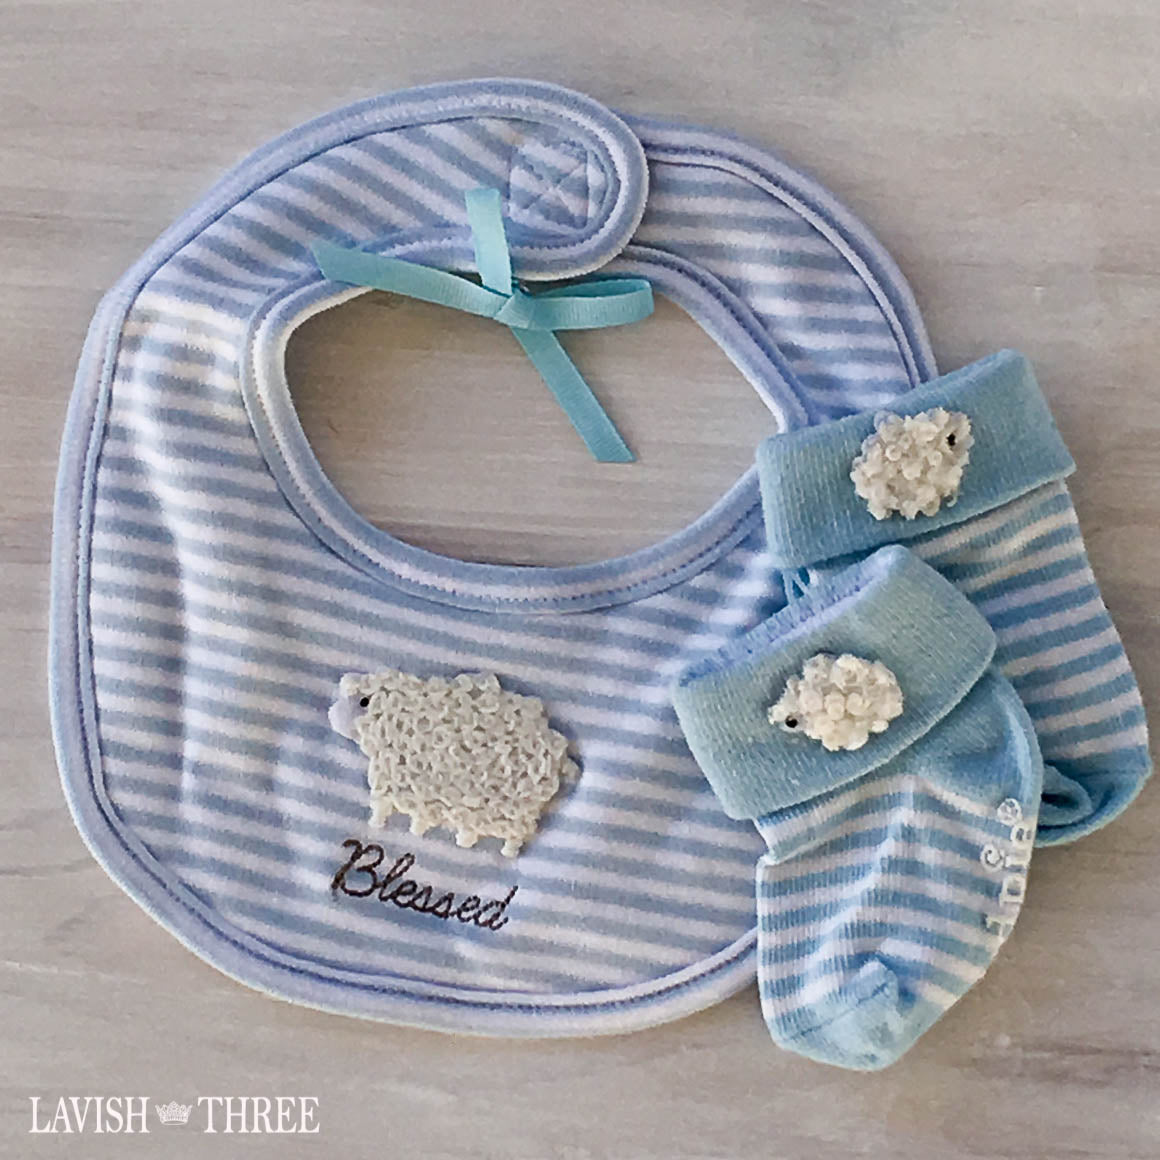 Blessed lamb baby boy pink stripe bib and socks gift set lavish three 3